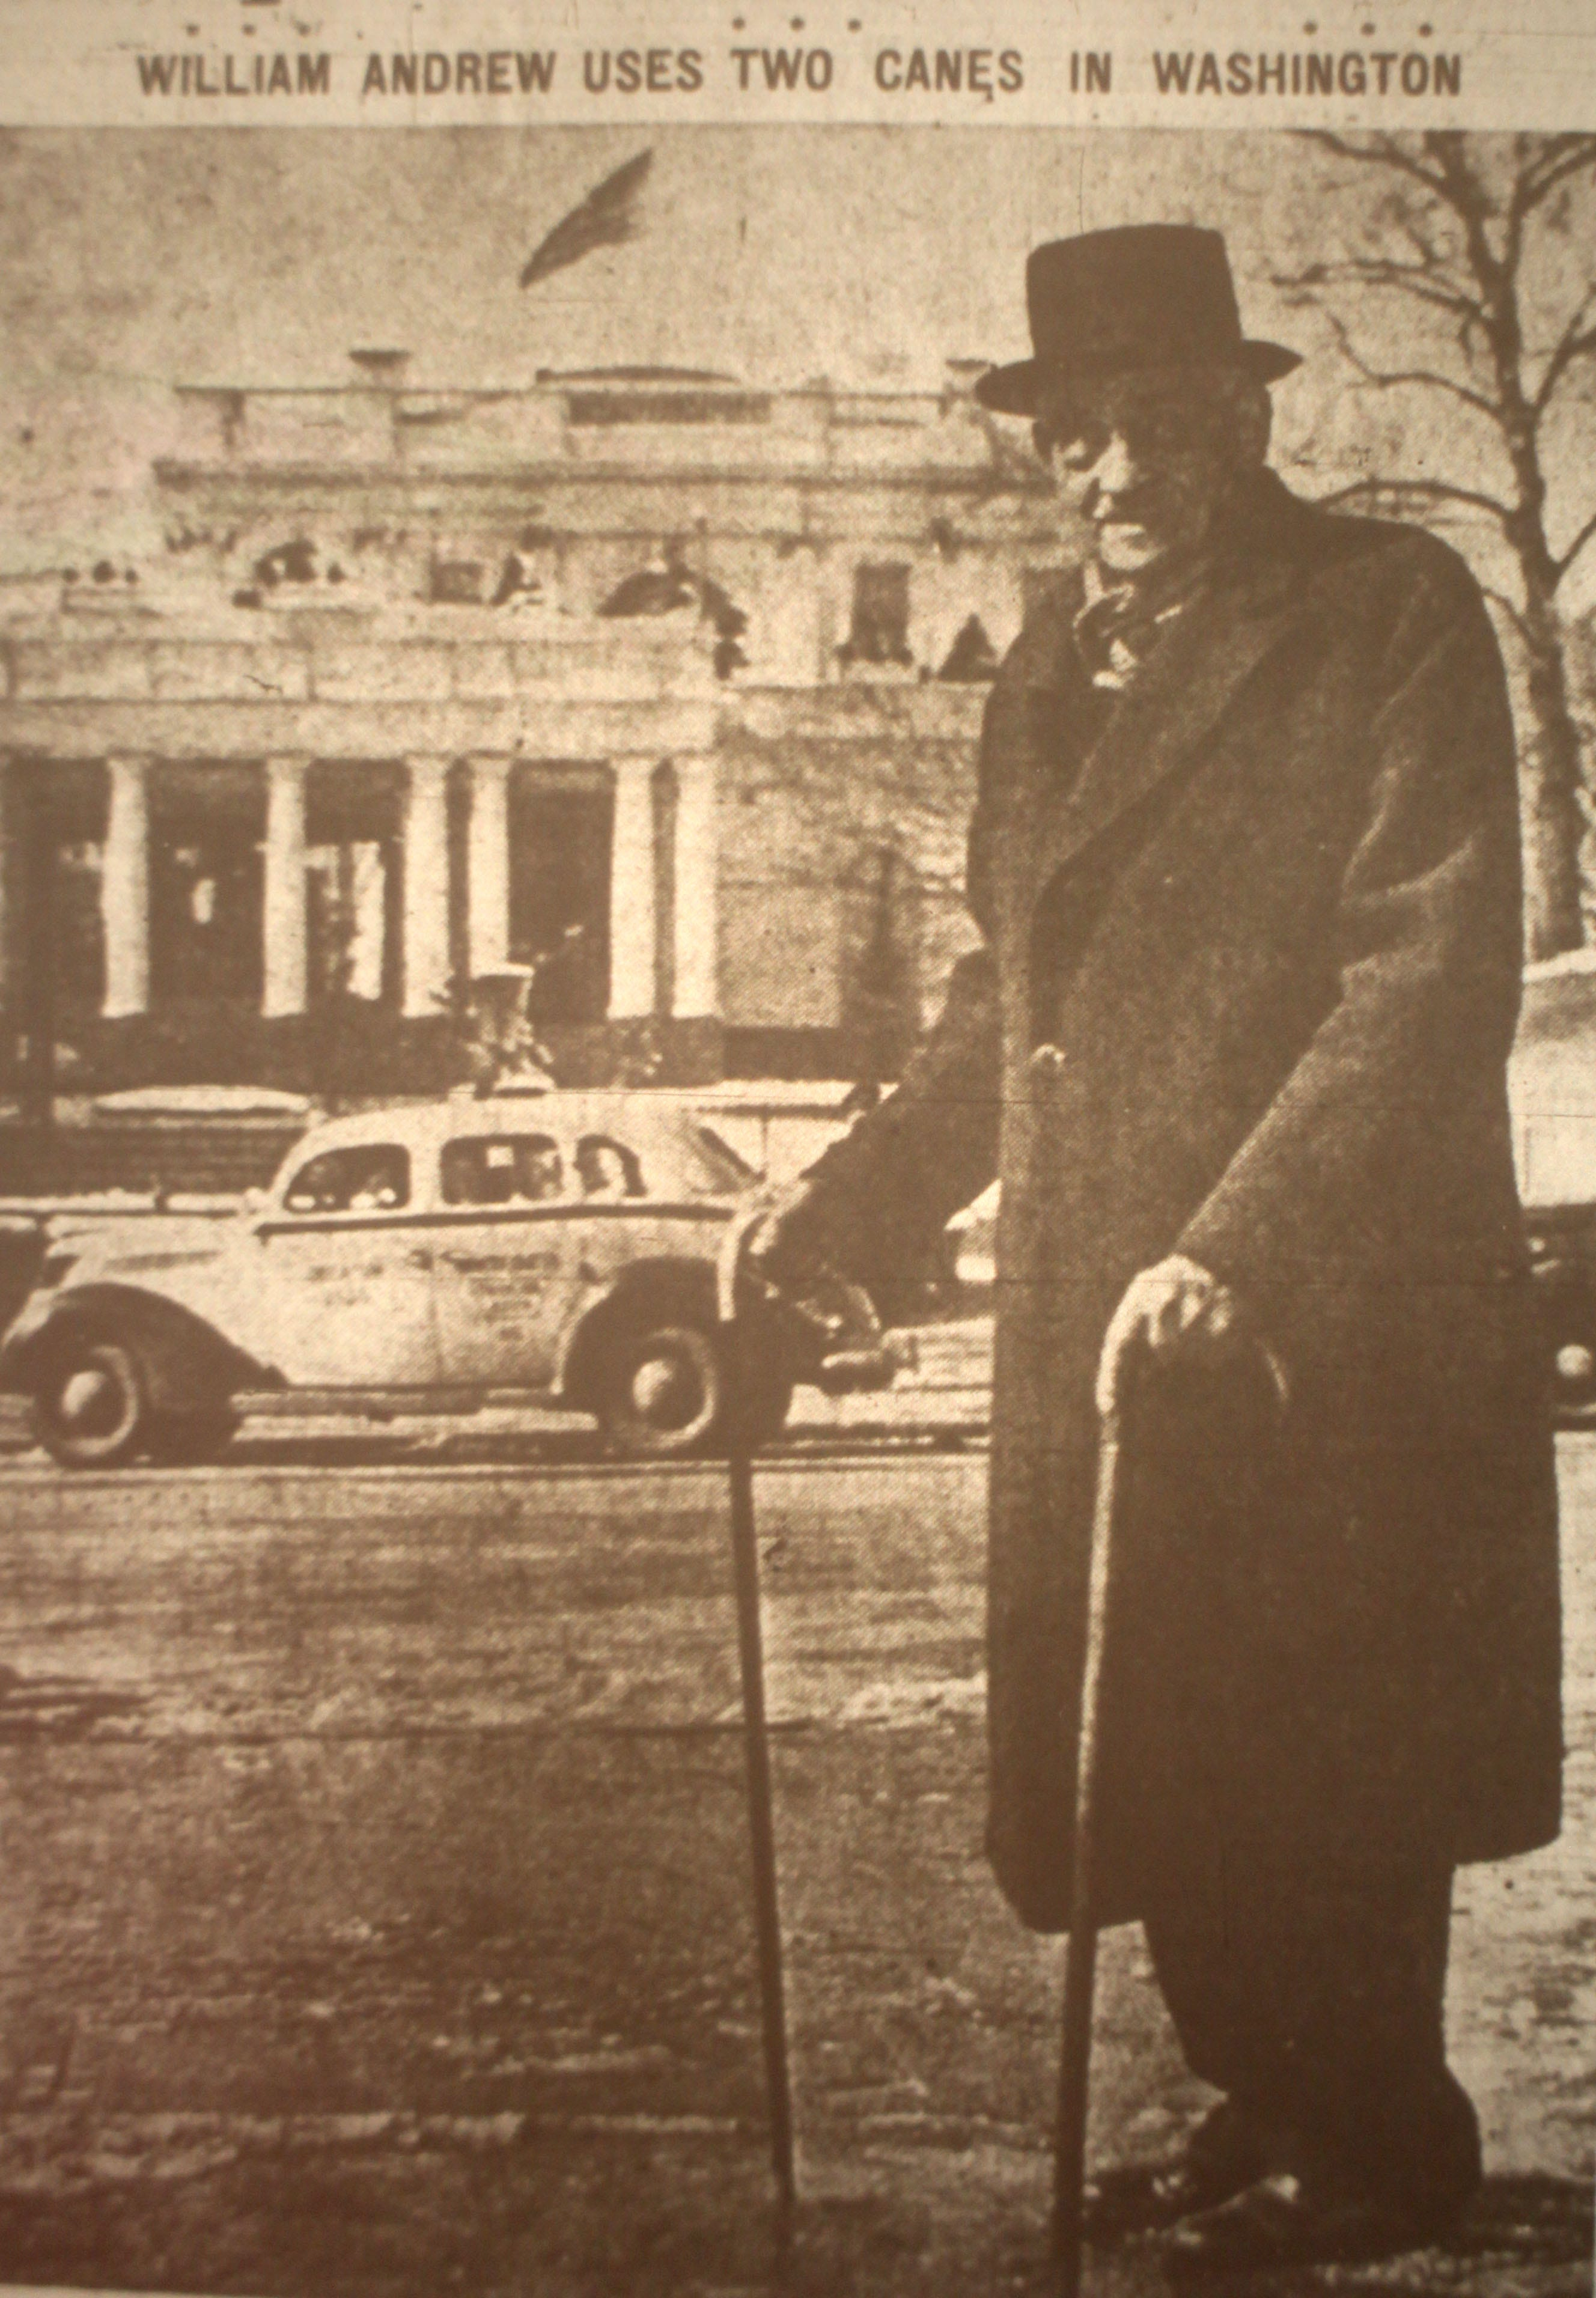 William Andrew Johnson, a former slave of President Andrew Johnson, in front of the White House in Washington, DC in February 1937.  In his right hand he holds the cane presented to him by President Frankiln Roosevelt during a visit to the White House. Johnson was freed along with 10 other slaves in 1863.